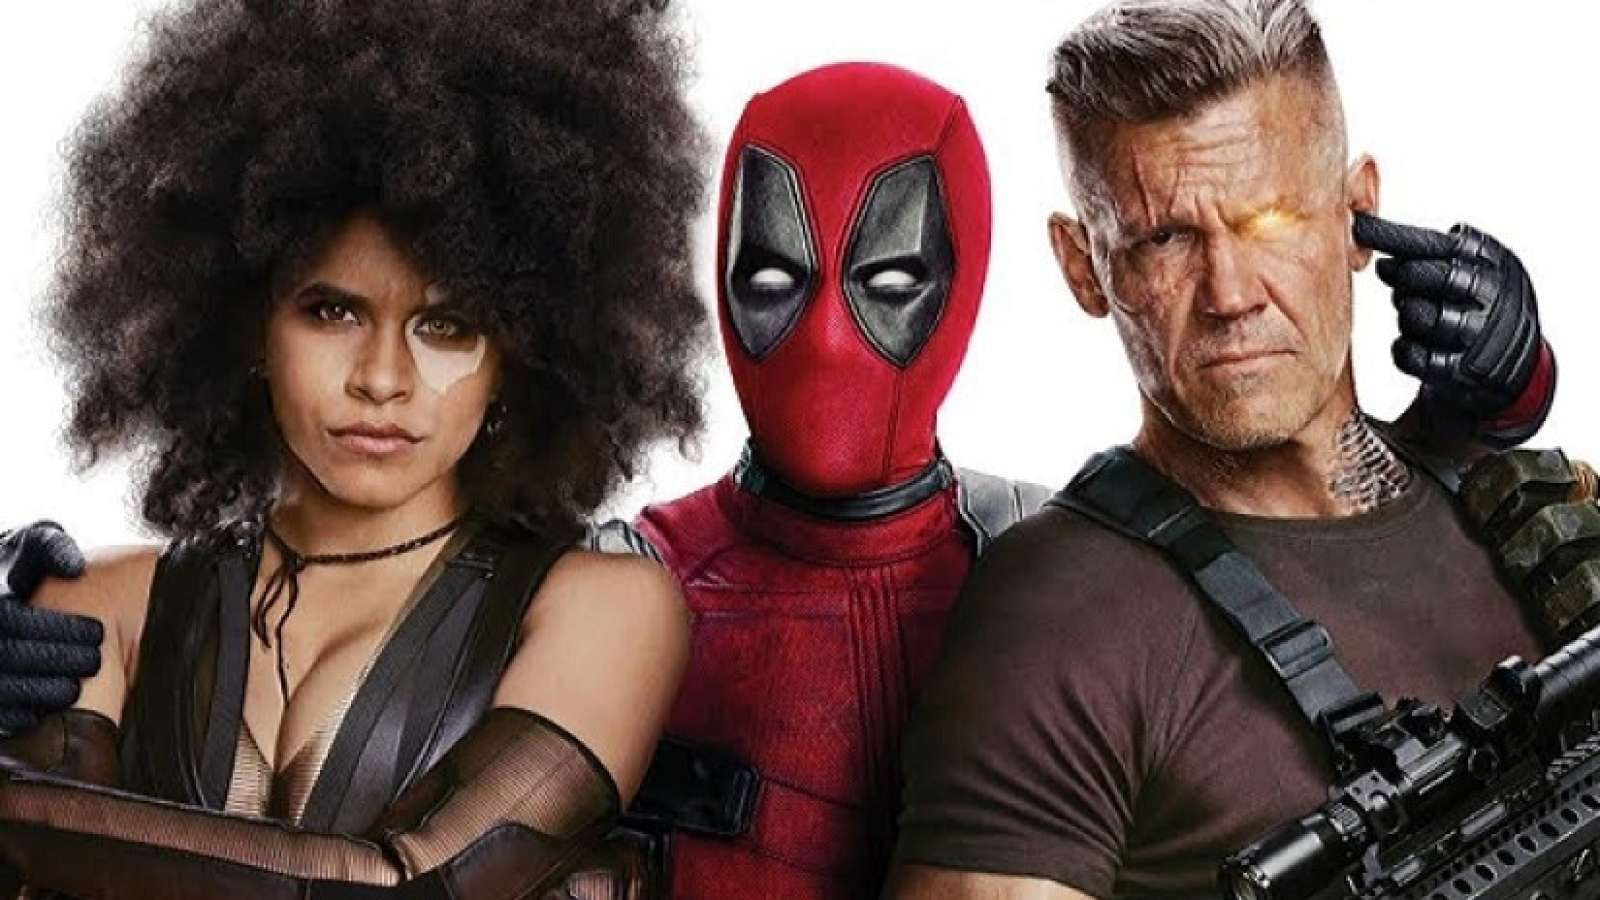 deadpool 2 dominates avengers infinity war at box office weekend